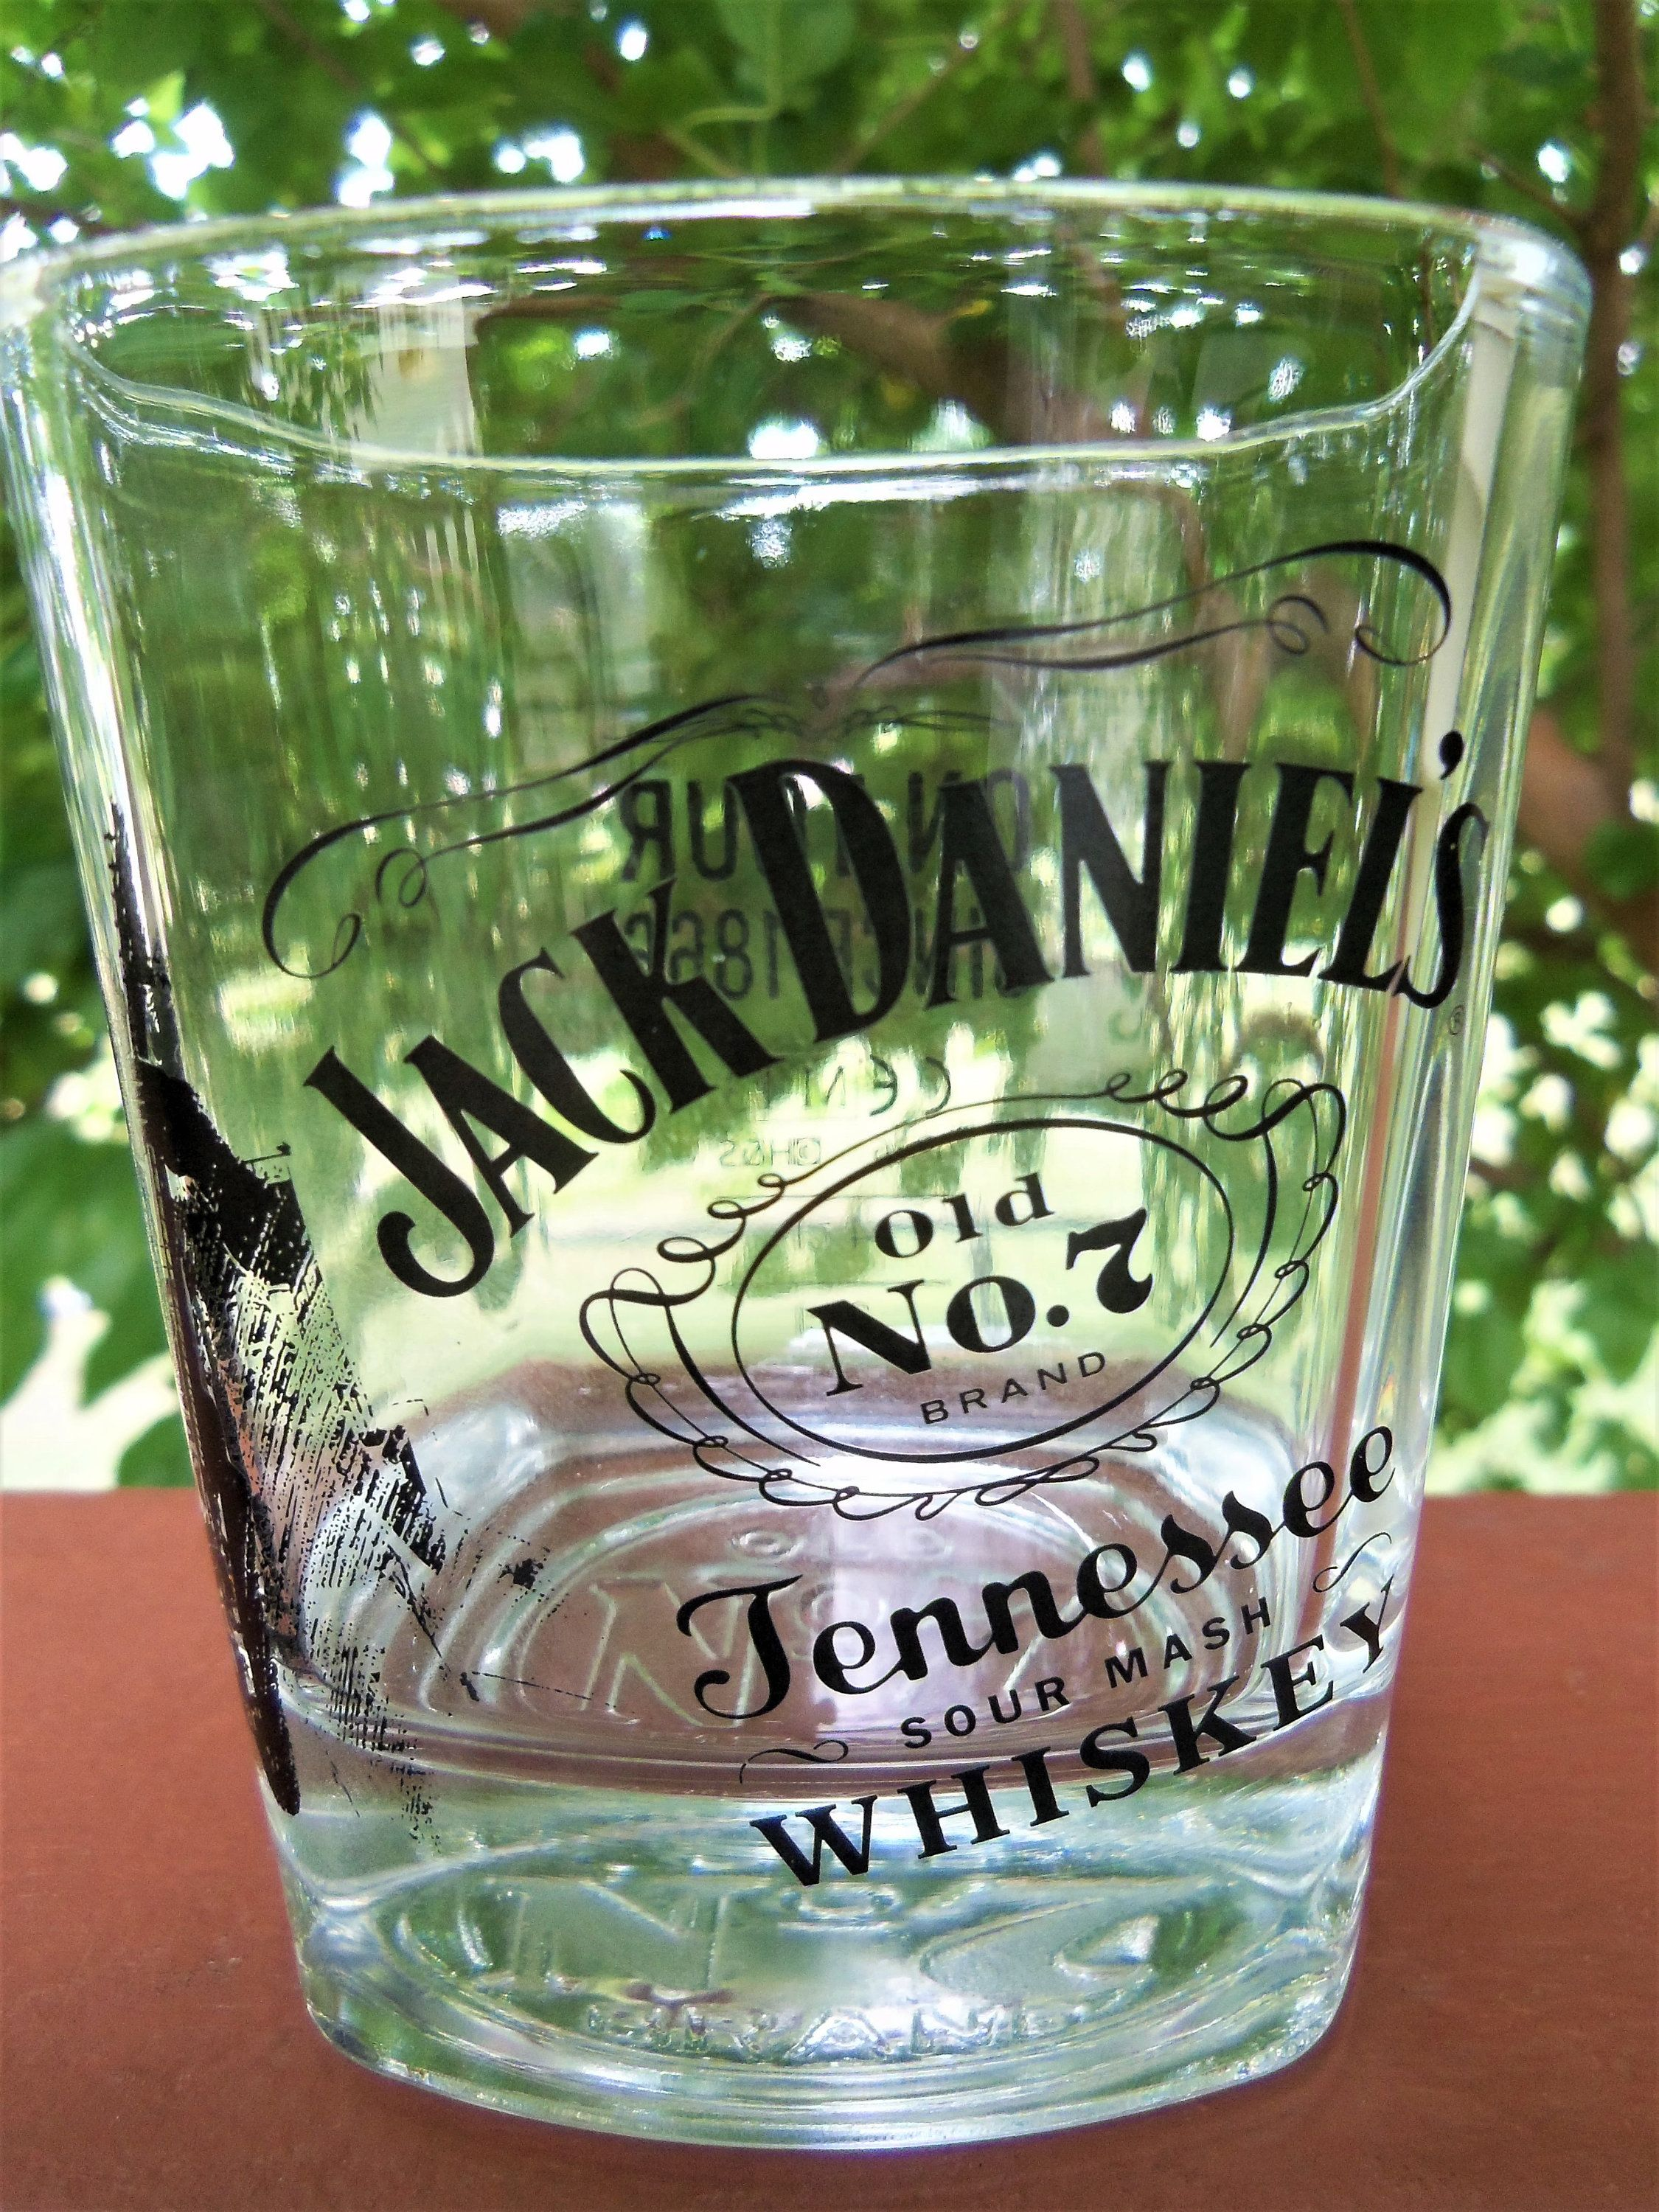 JACK DANIELS Whiskey Glass, Series on Tour Since 1866 Promotion, Limited Edition w/Guitar & Singer 1/4, Old No. 7 Brand